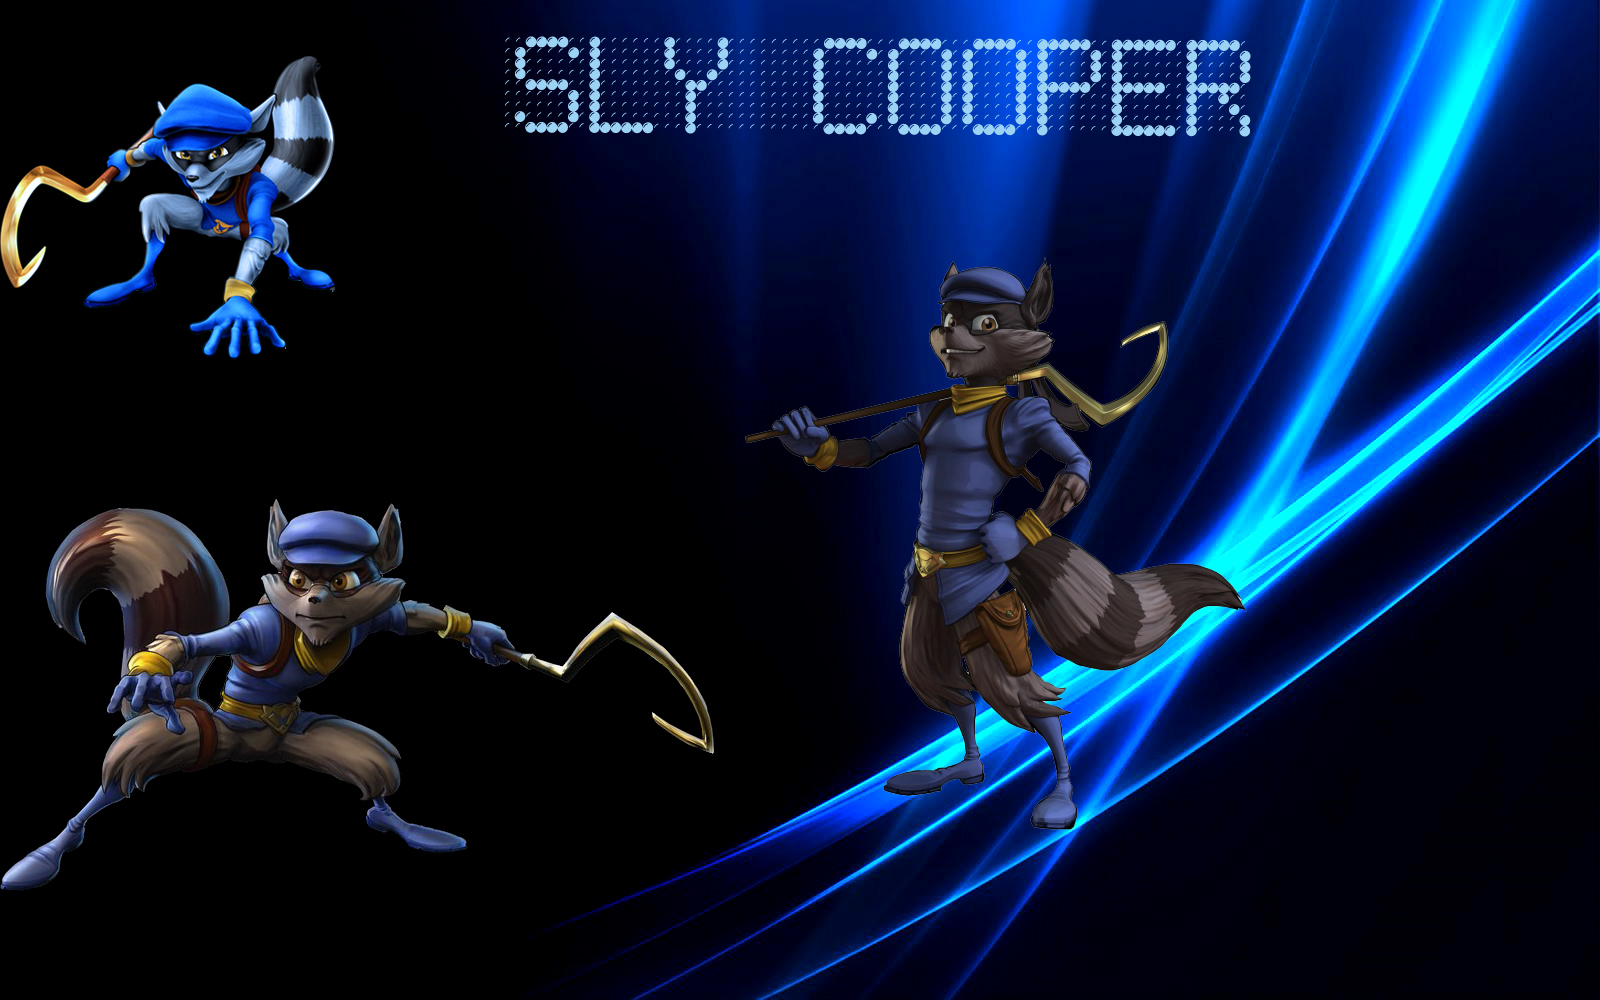 Sly Cooper wallpaper by Mordecai9999 1600x1000